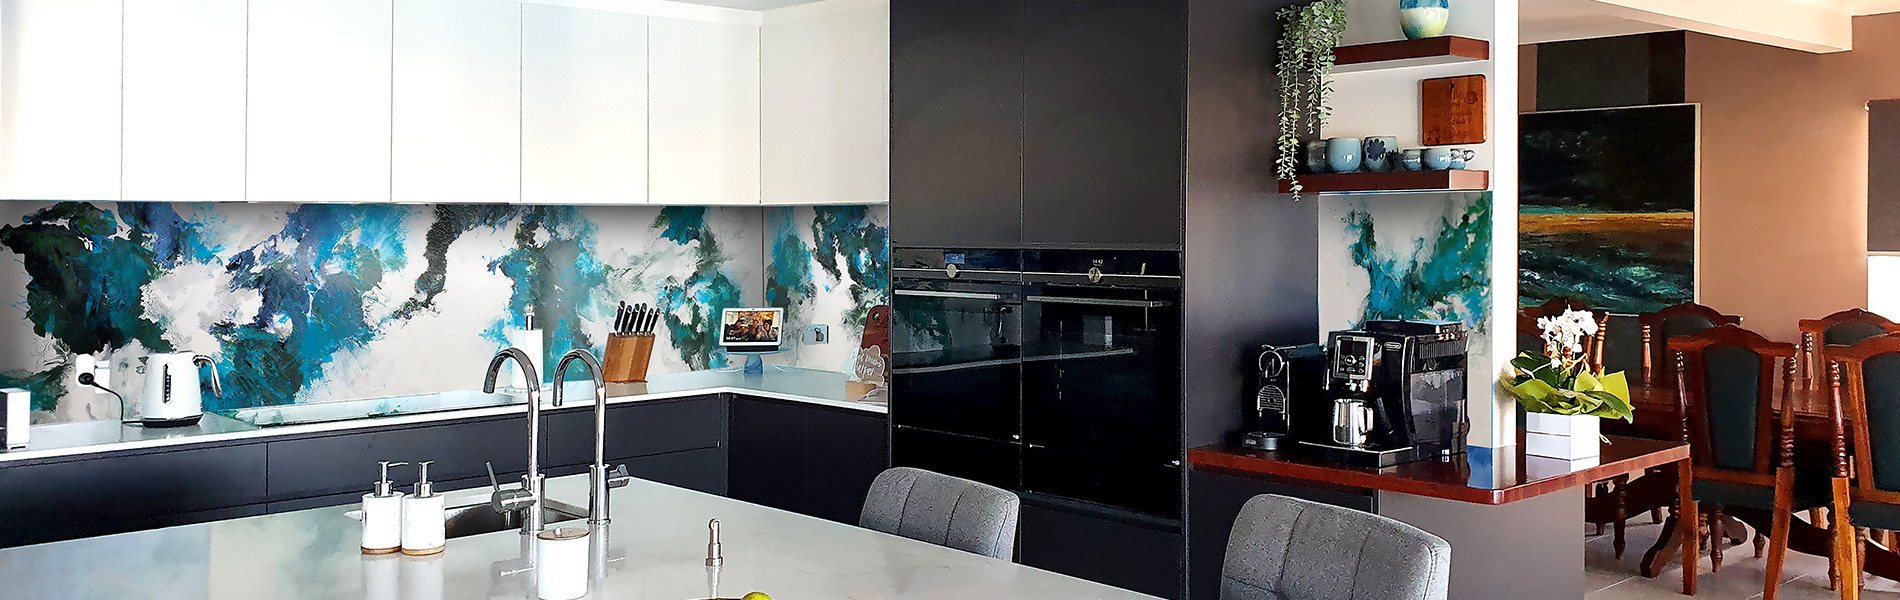 Home-page-banner-hand-painted-splashback-mural